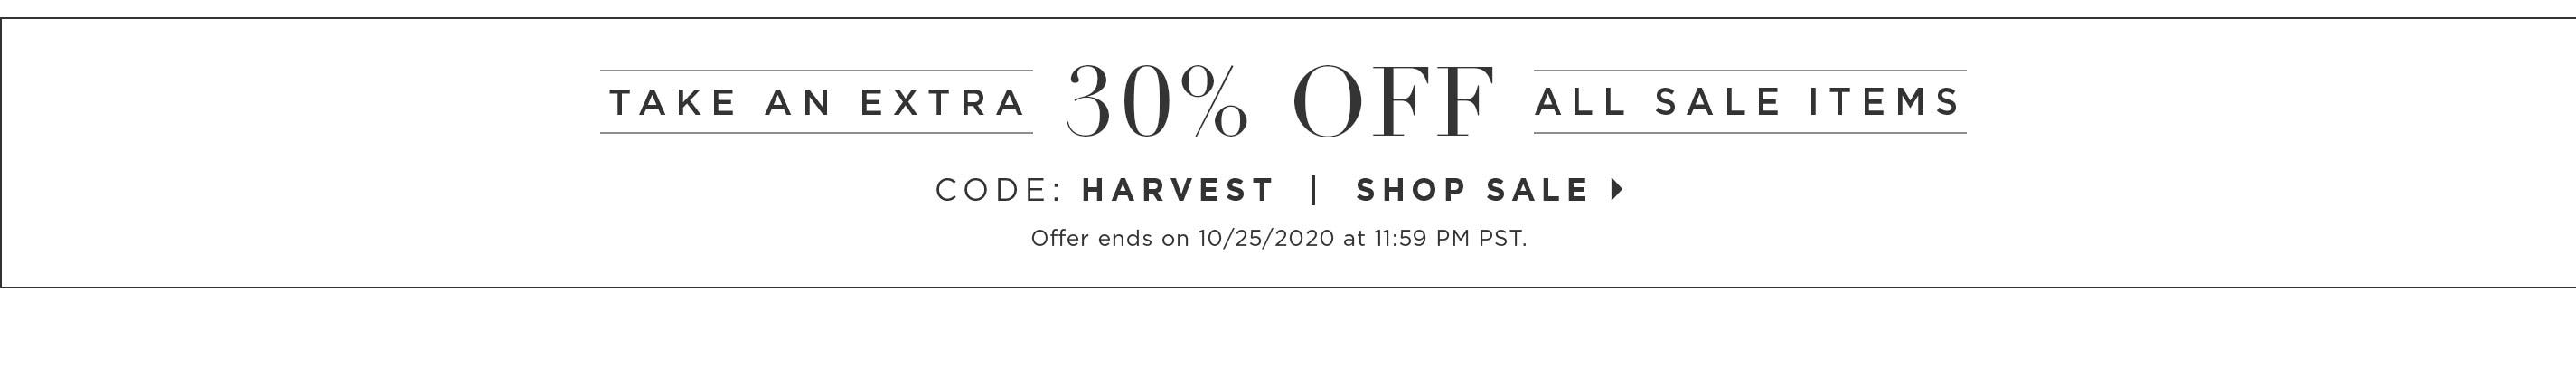 Take an Extra 30% off all Sale Items - Code: HARVEST - Shop Sale - Offer ends on 1/25/2020 at 11:59pm PST.